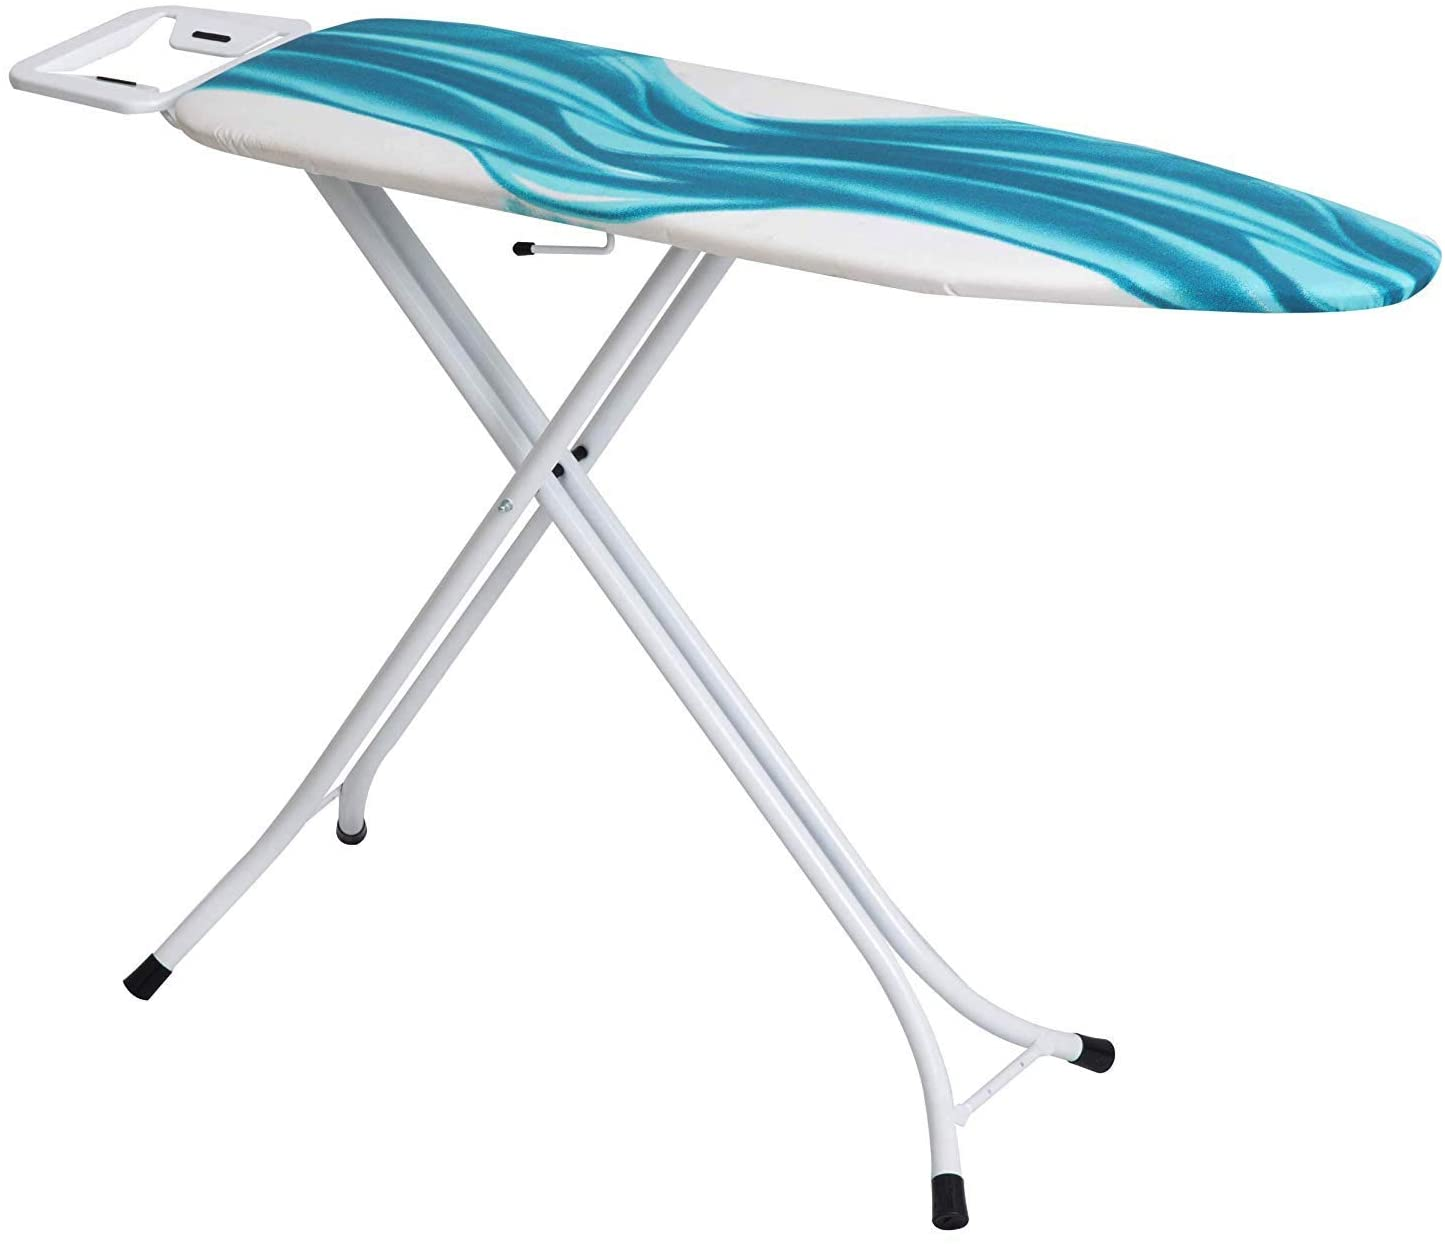 MABELHOME Adjustable Height Ironing Board